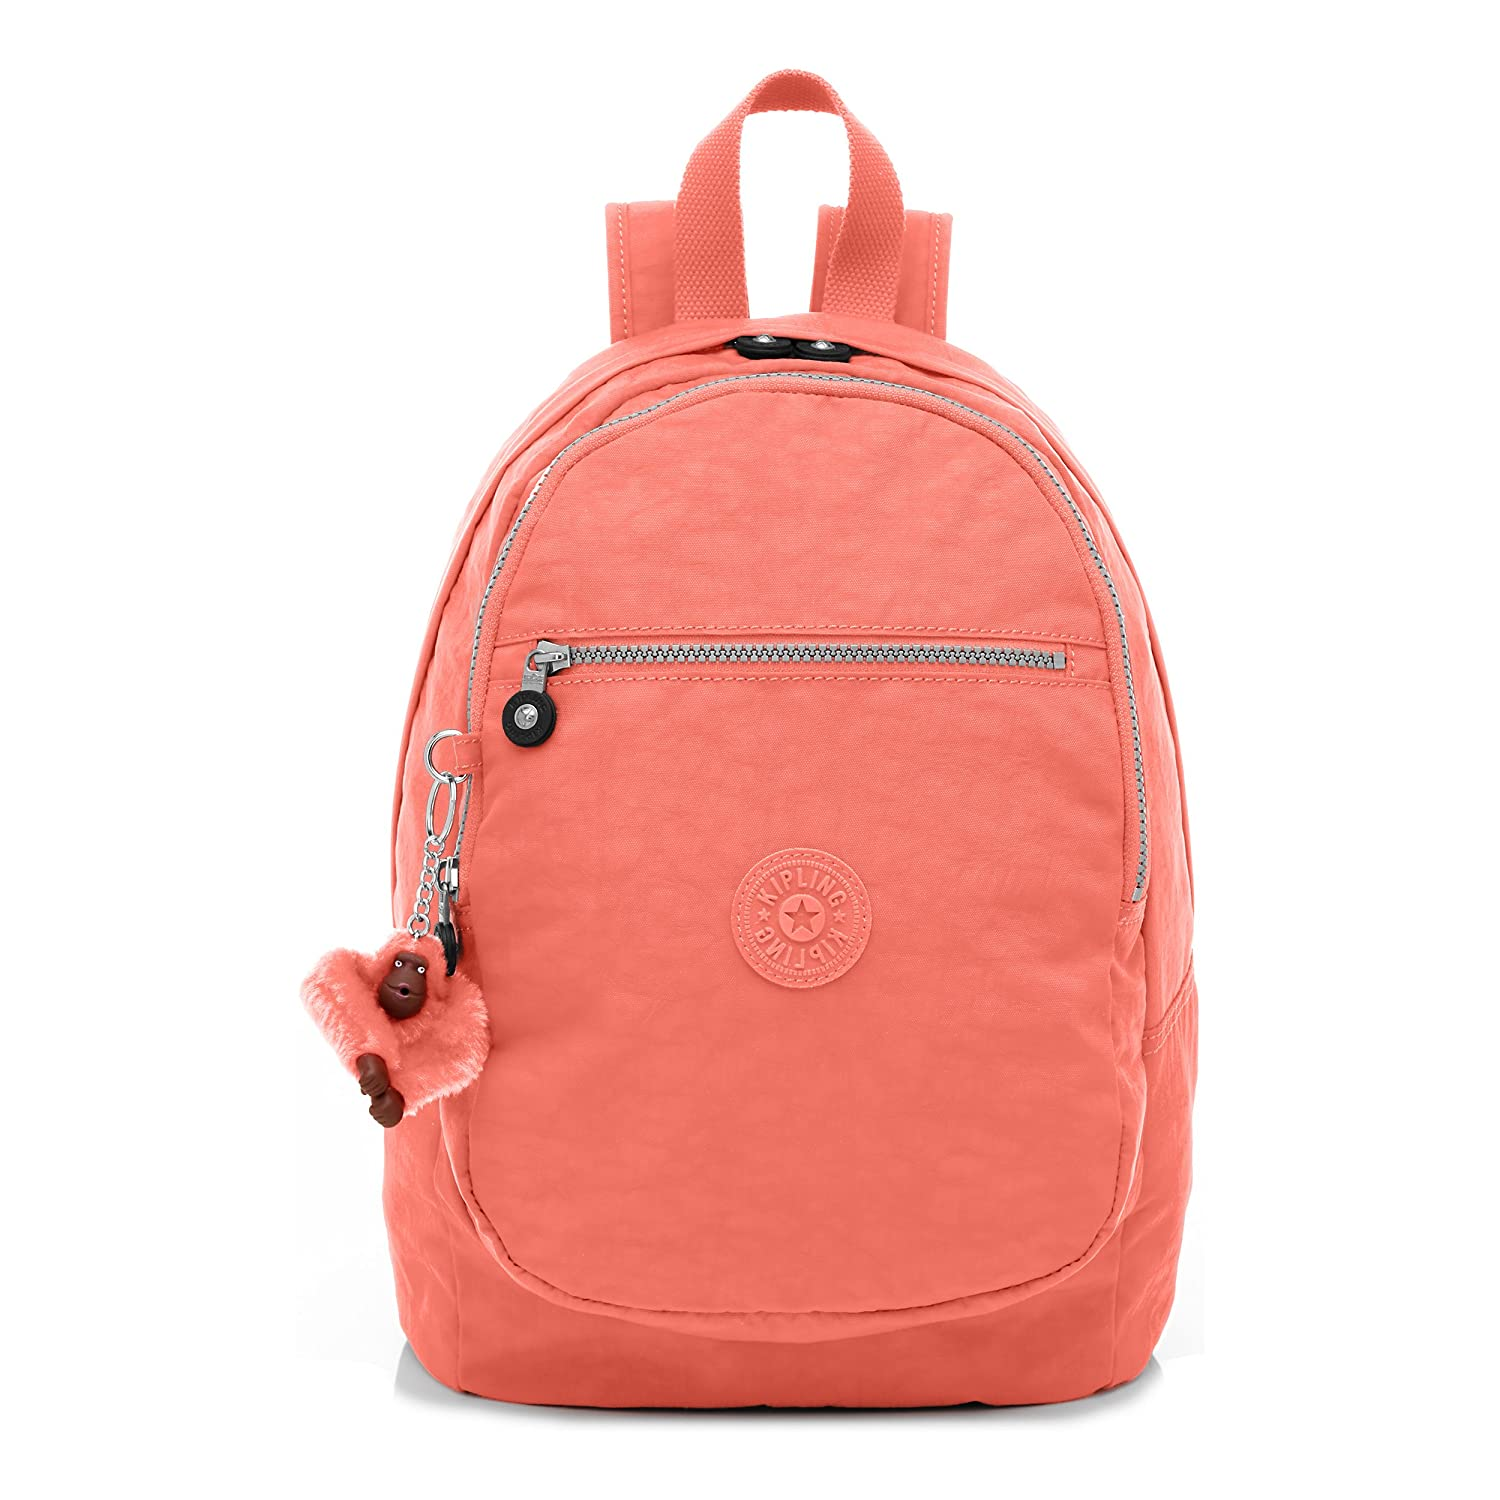 $70.25(was $122.20) Kipling Challenger II Backpack, Cool Orange, One Size